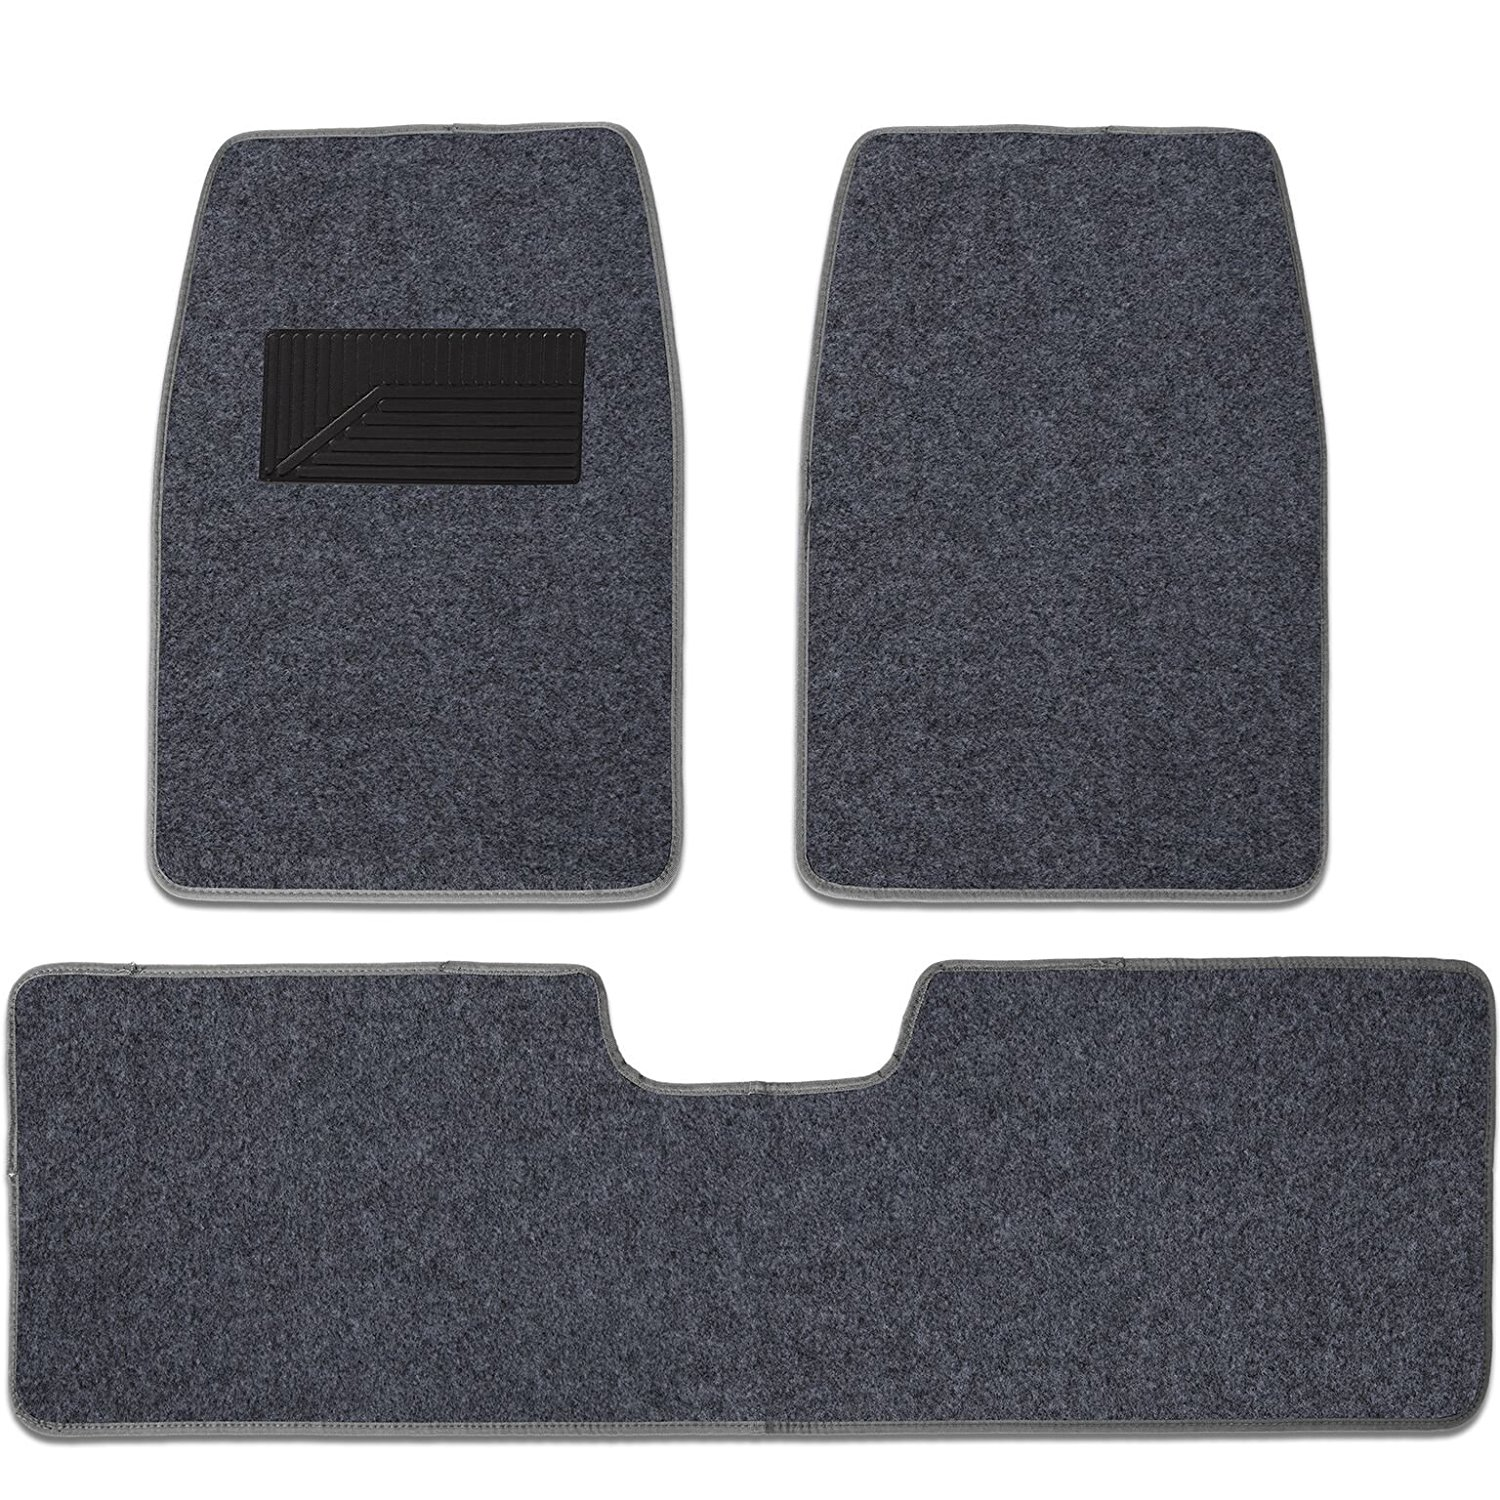 Charcoal Dark Gray Grey Universal 3pc Set Durable Premium Carpet Floor Mats with Heel Pad - may fit for Cars Trucks Sedans SUVs